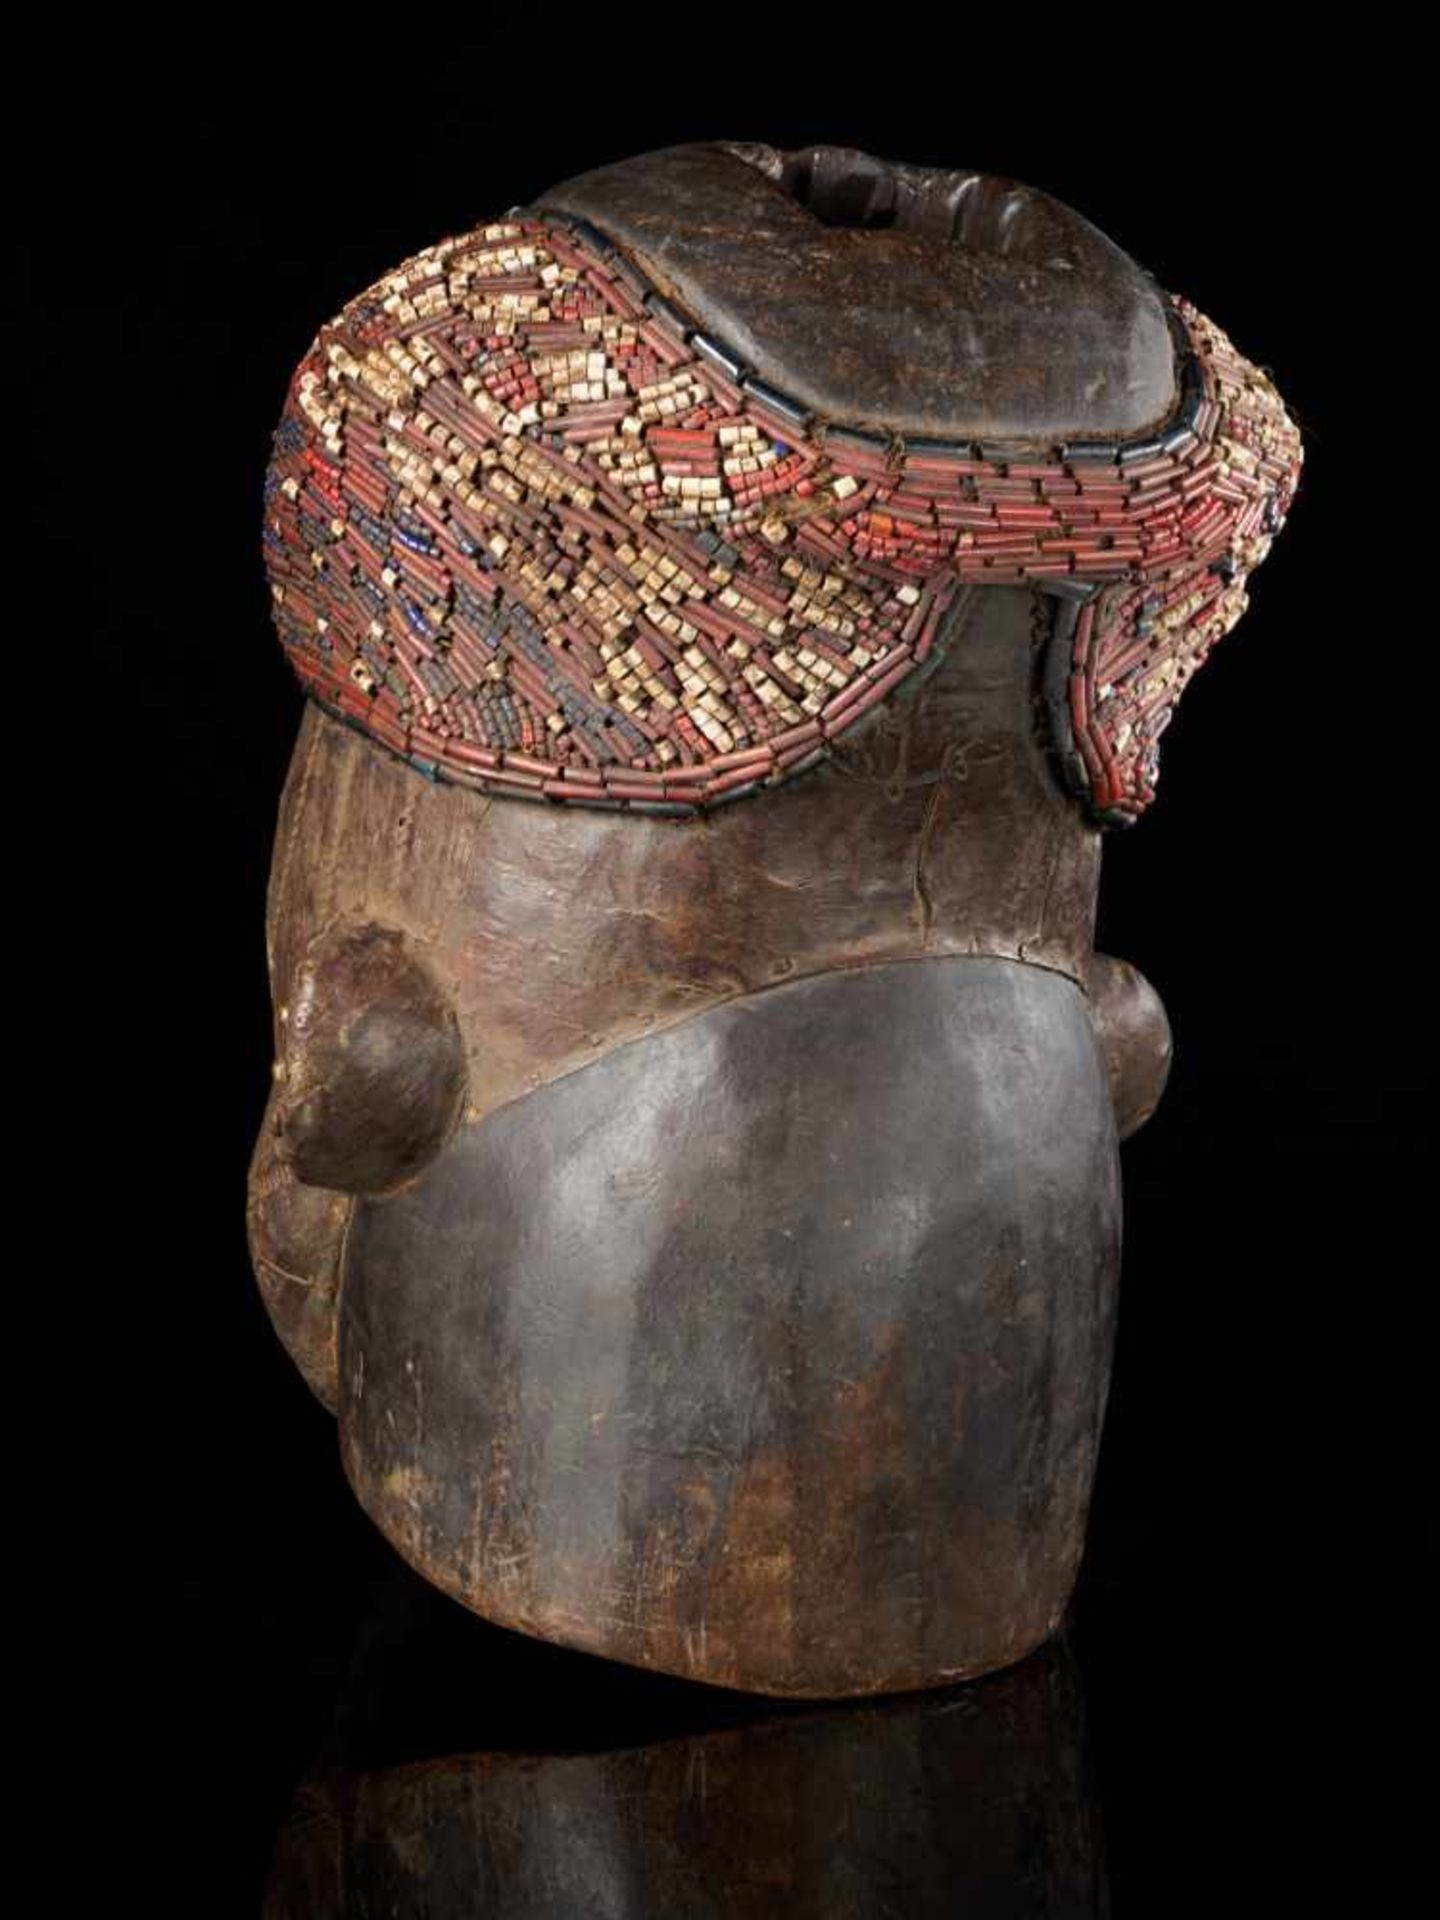 Beaded Helmet Mask - Copper Covered Face - Tribal ArtThis gorgeous wooden mask is detailed with a - Bild 3 aus 5